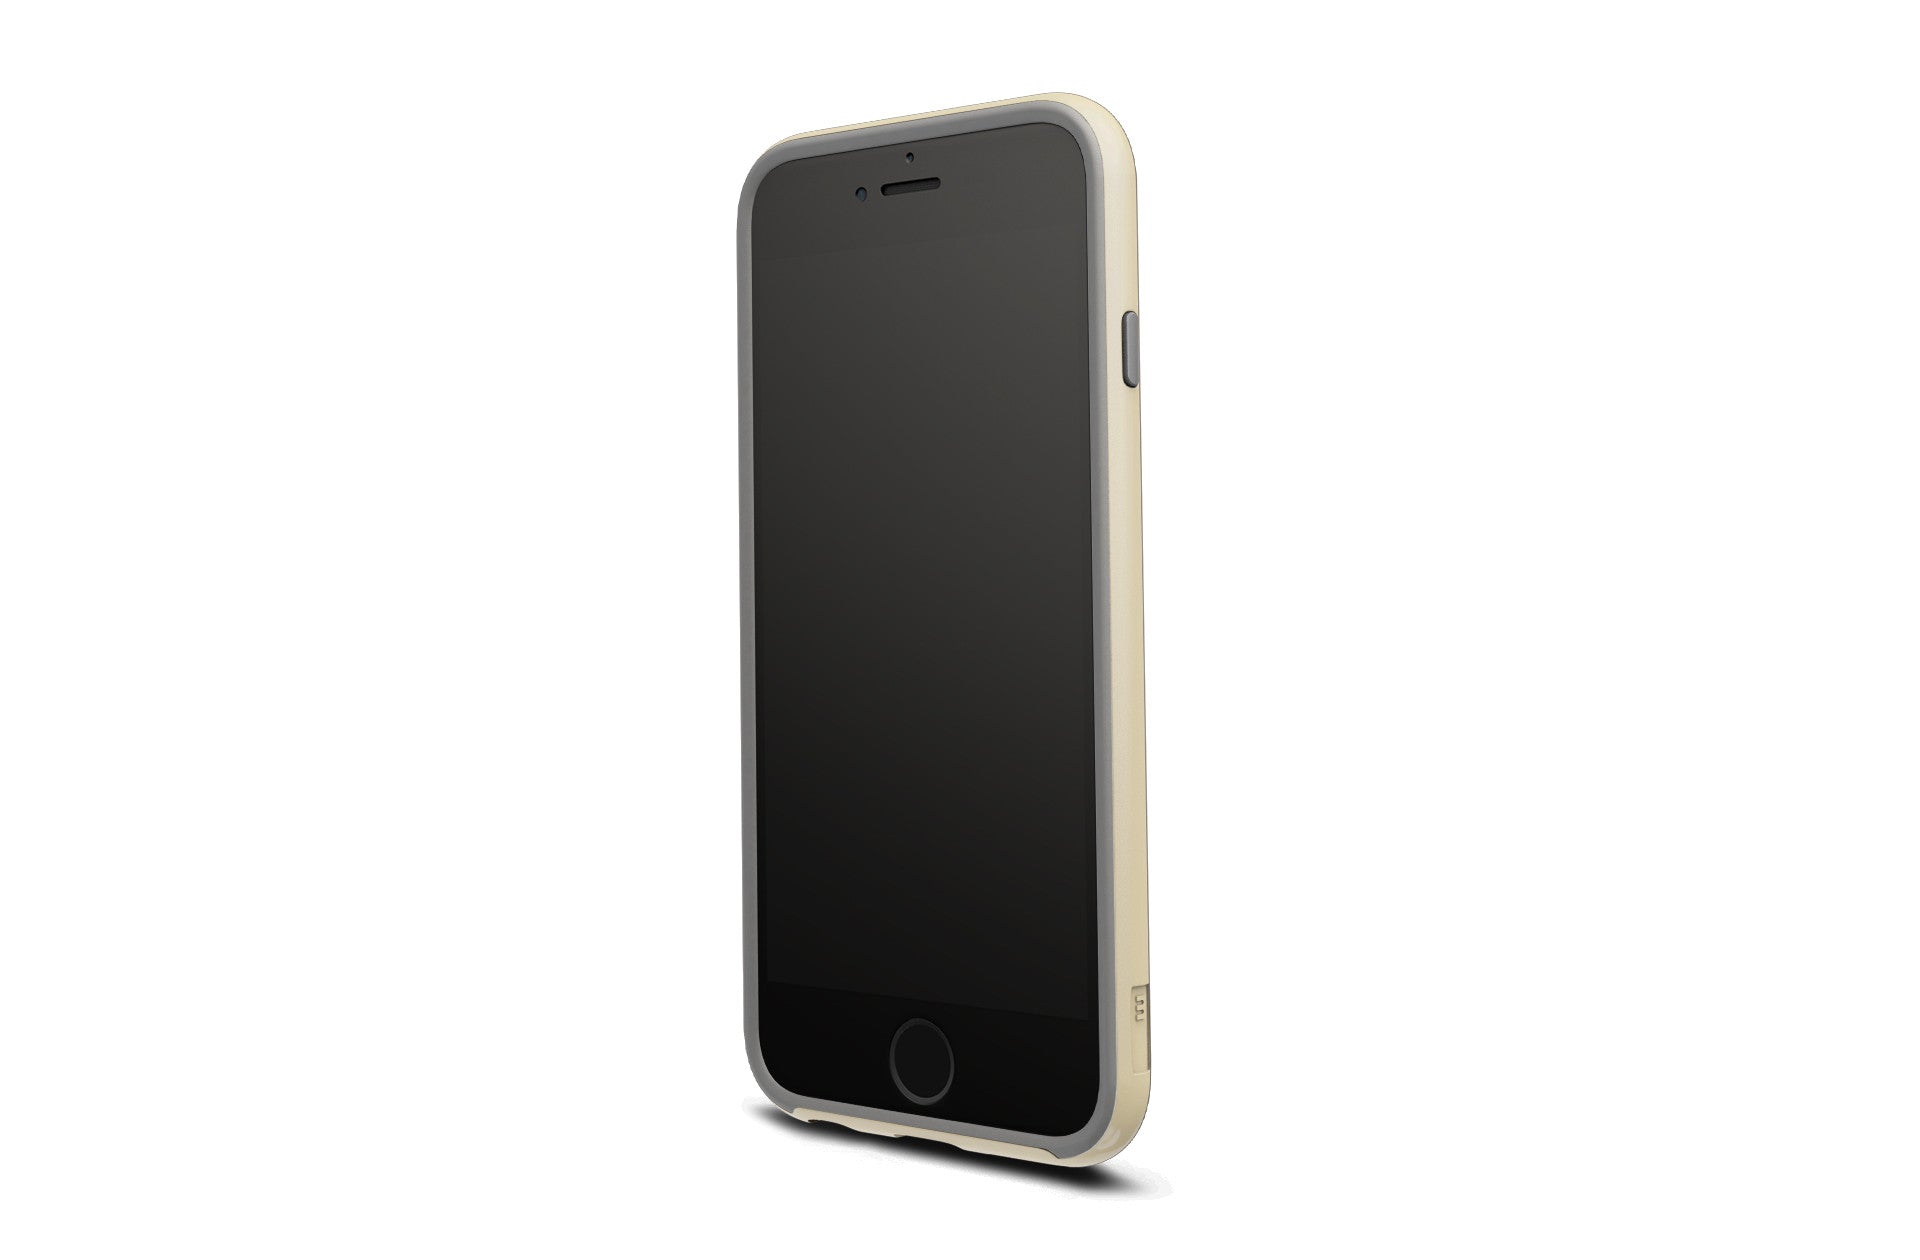 BEZELCase Uber Premium Polycarbonate Composite Bumper for iPhone 6